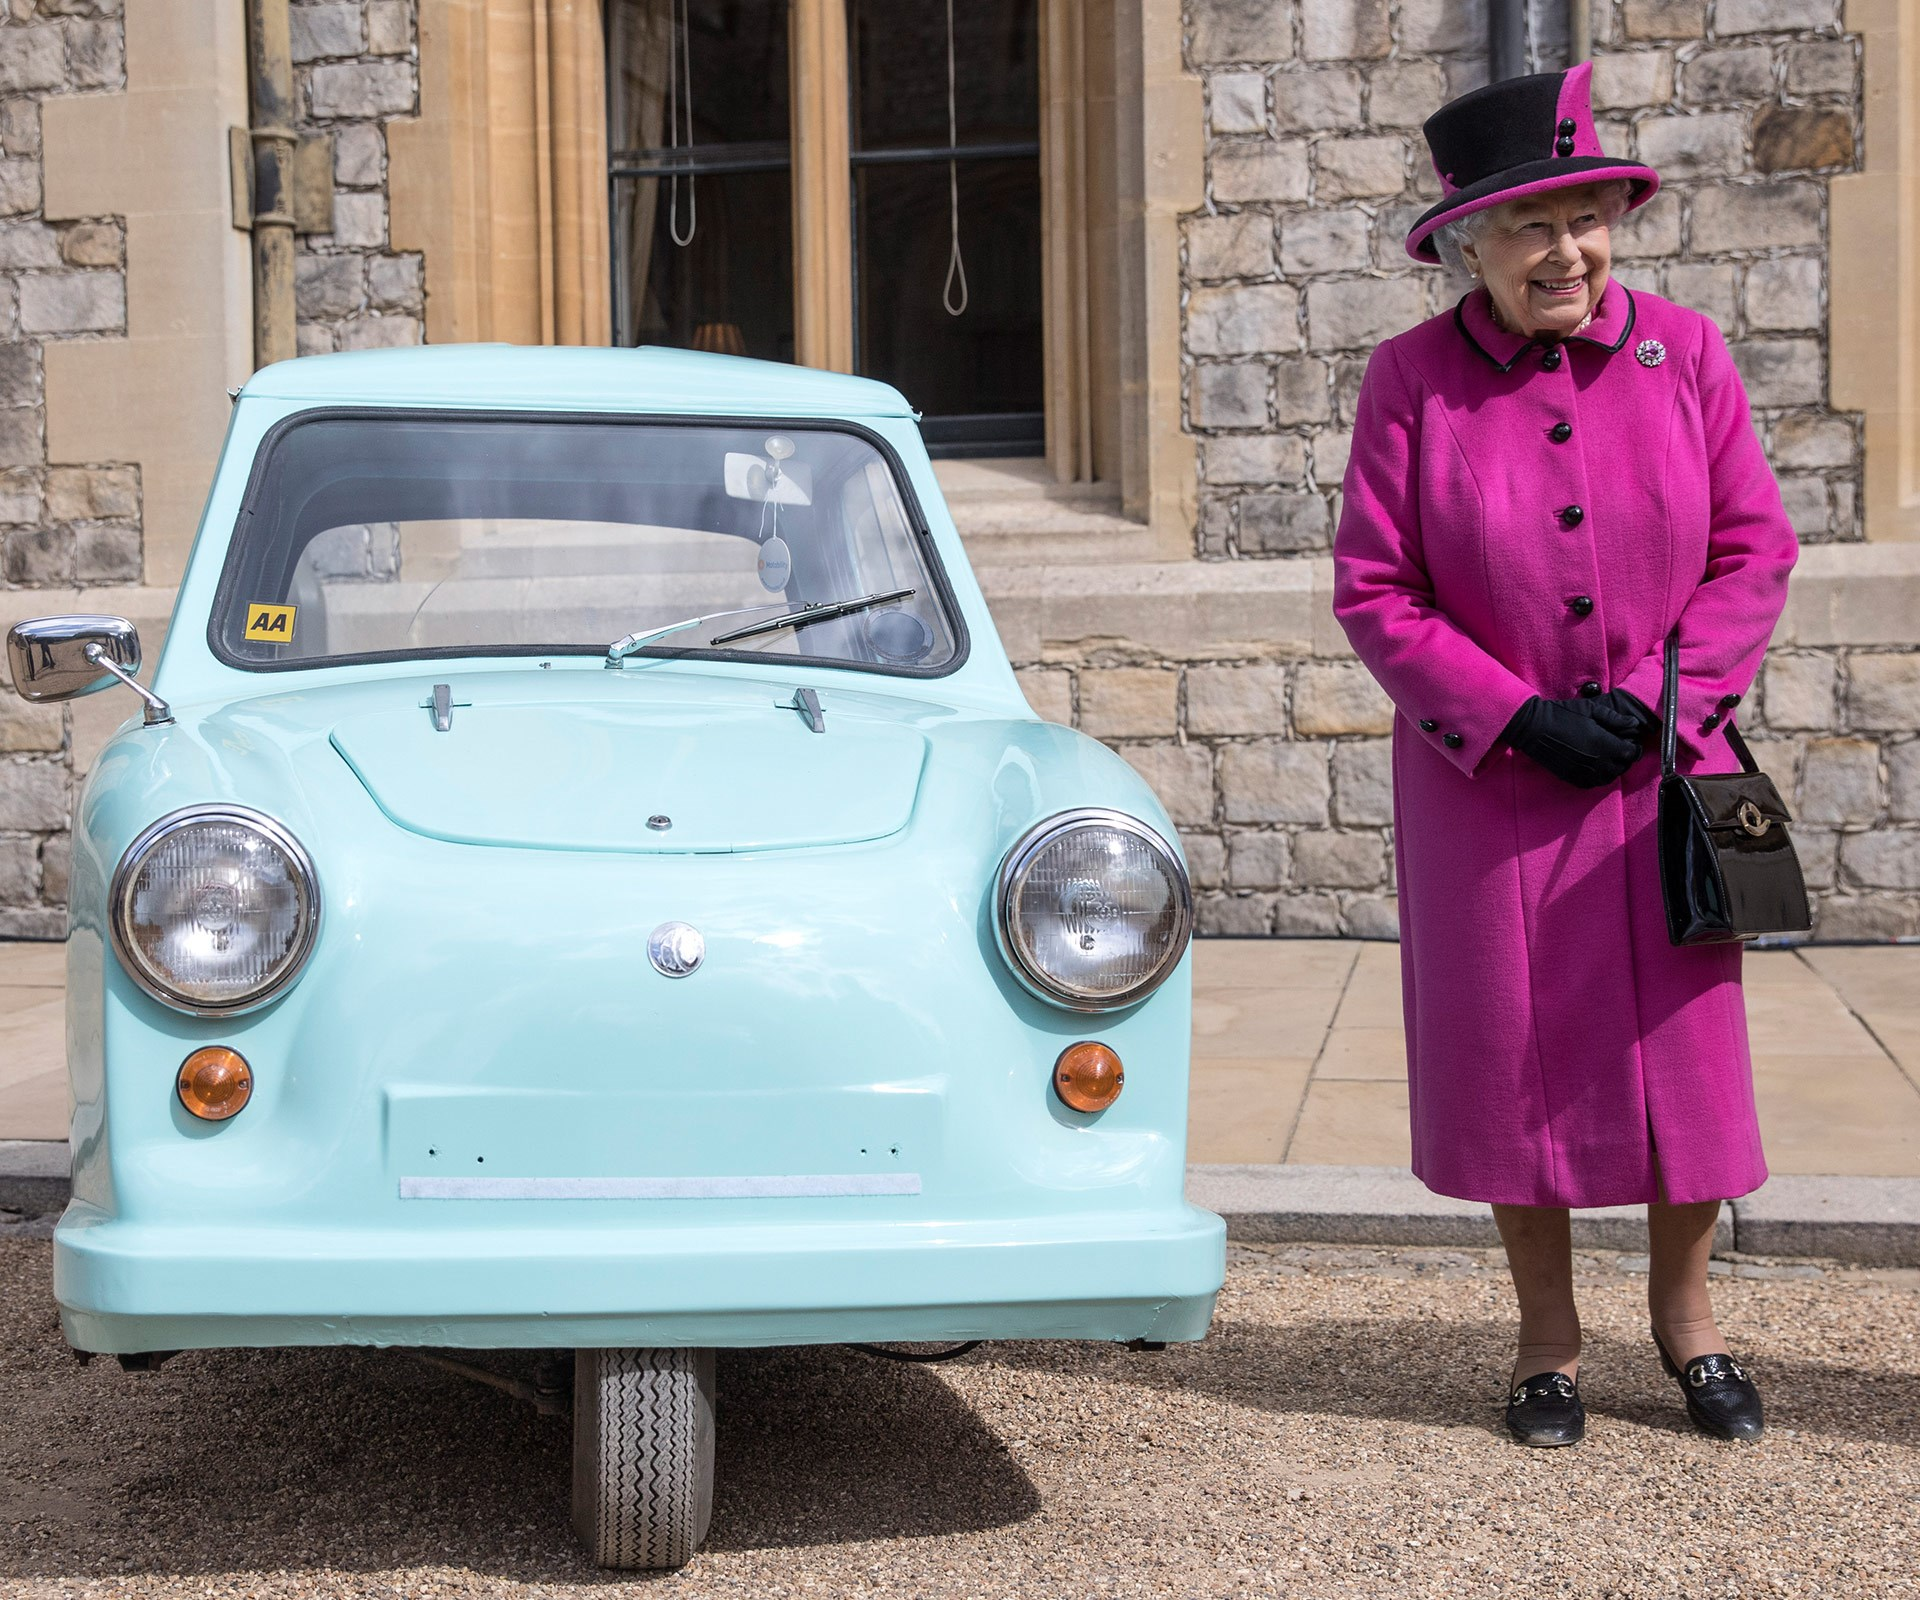 "Birthday girl Queen Elizabeth was a vision in vibrant Magenta. The only thing that could brighten her splendid coat was her adorable sidekick, a 1960s Del Boy style three-wheeler vehicle. Maybe it will have run on the next season of the [*The Crown!*](http://www.nowtolove.com.au/celebrity/tv/the-crown-season-two-release-date-36531|target=""_blank"")